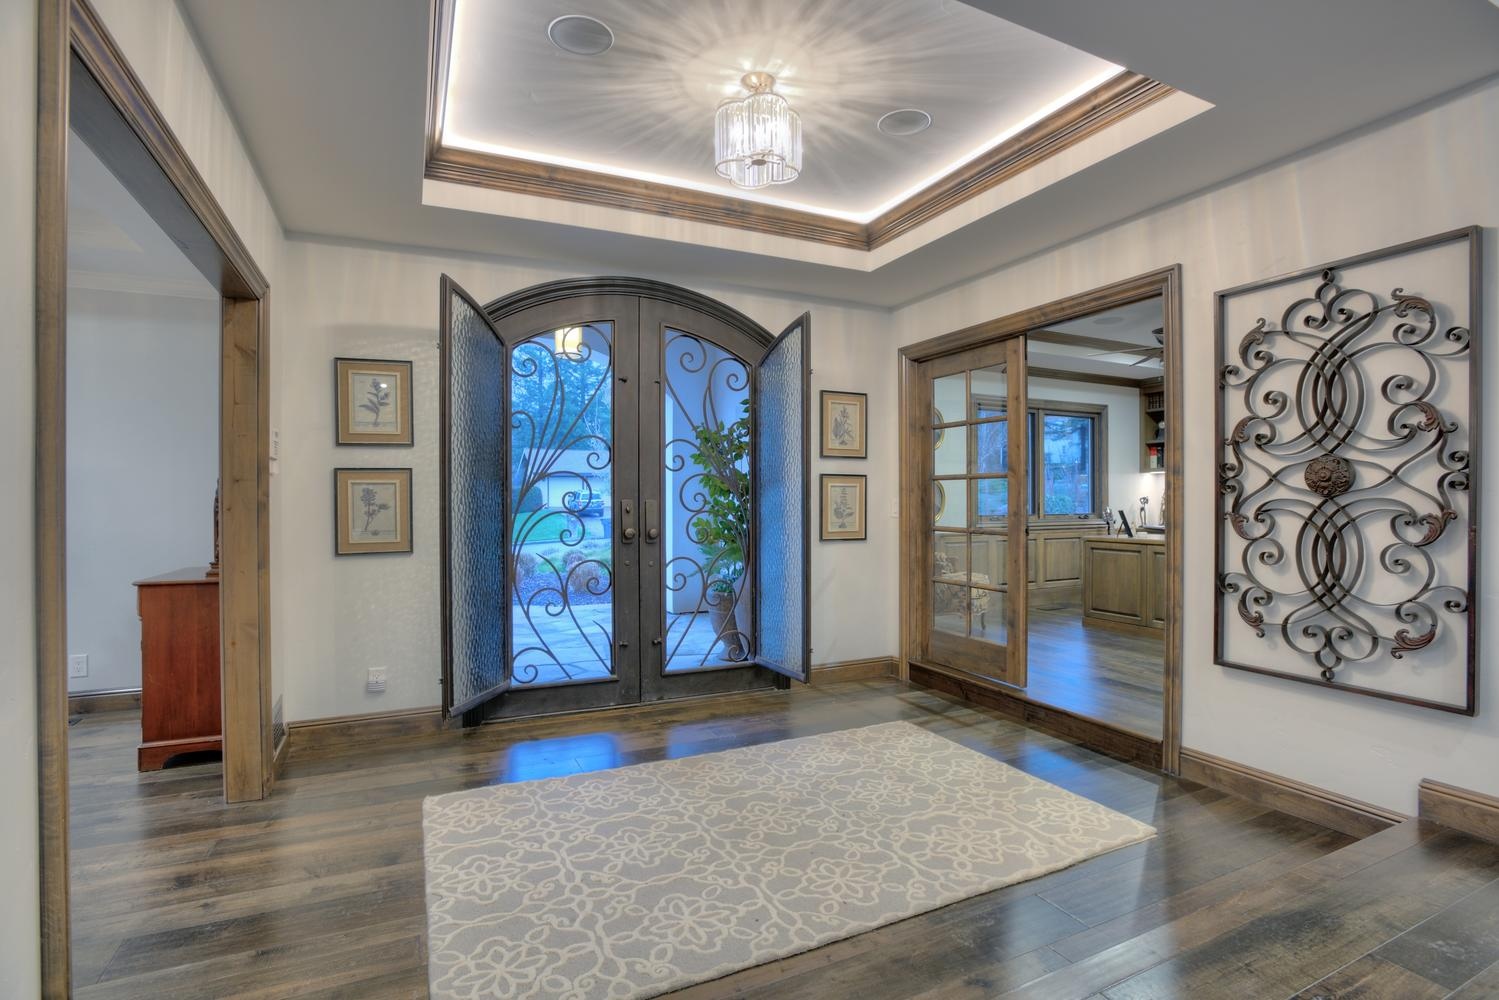 15977 Grandview Dr Monte-large-013-35-Foyer with Door Windows Open-1499x1000-72dpi.jpg